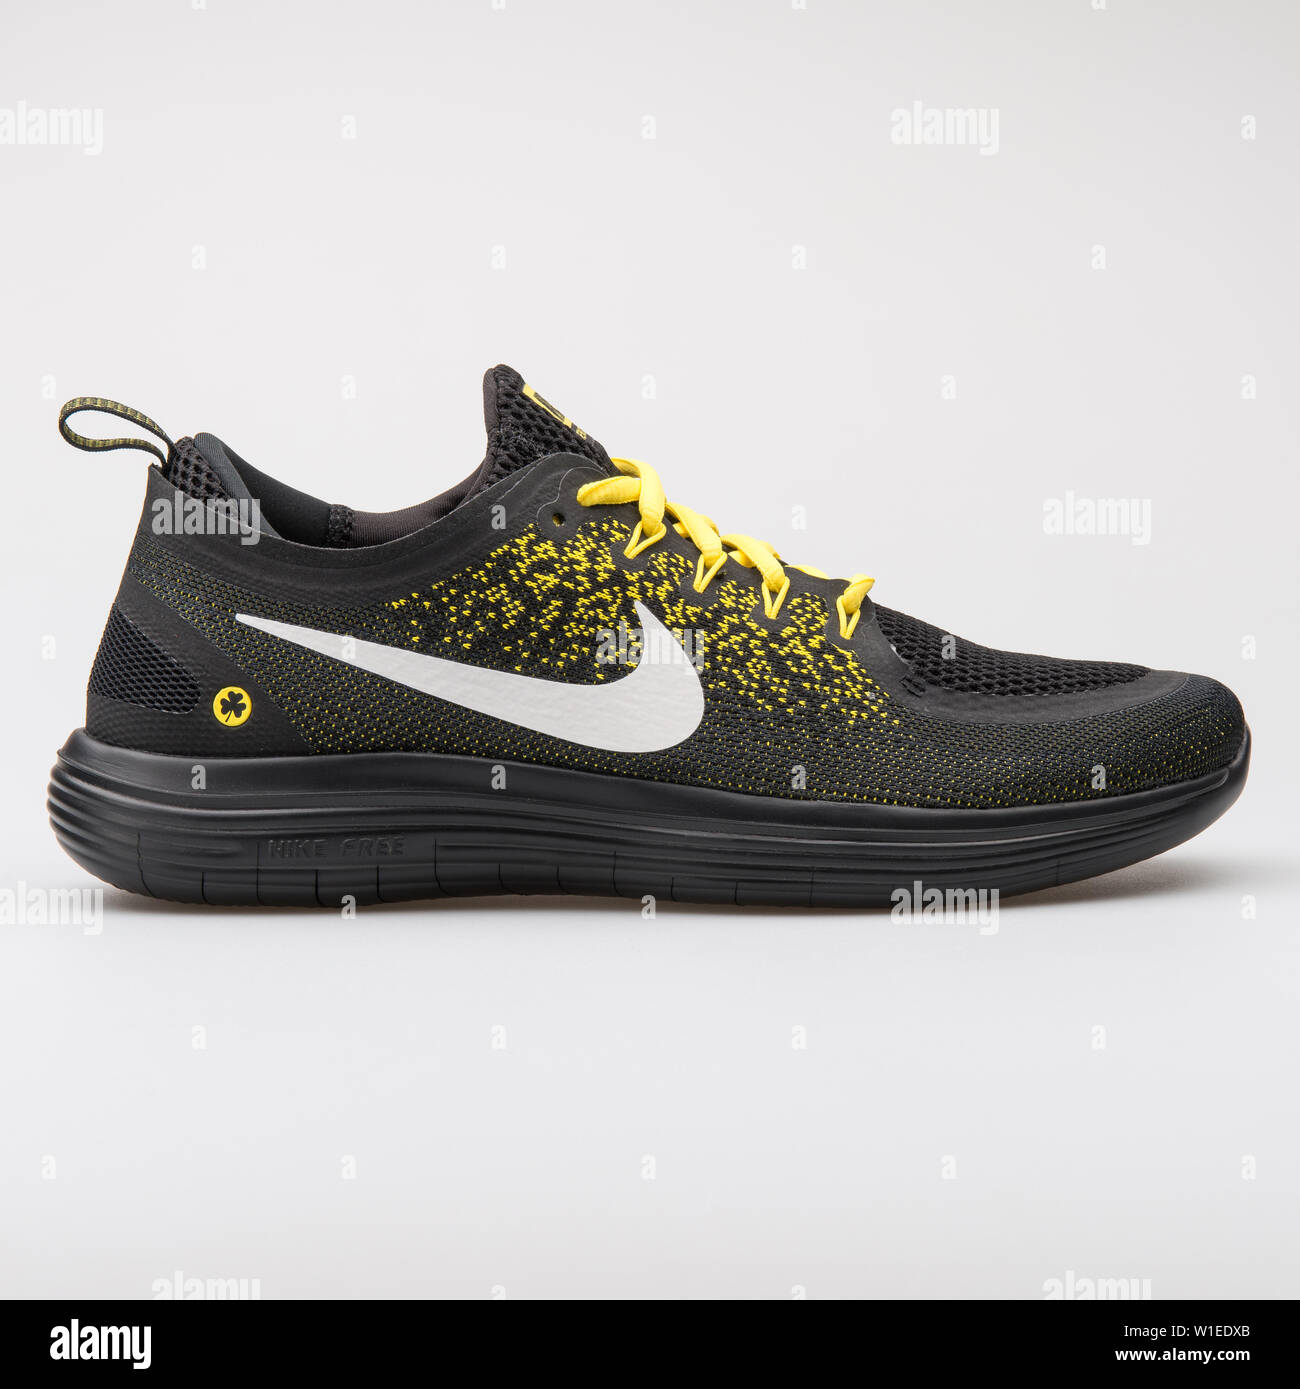 capacidad letra Medición  VIENNA, AUSTRIA - AUGUST 7, 2017: Nike Free RN Distance 2 BSTN black and  yellow sneaker on white background Stock Photo - Alamy